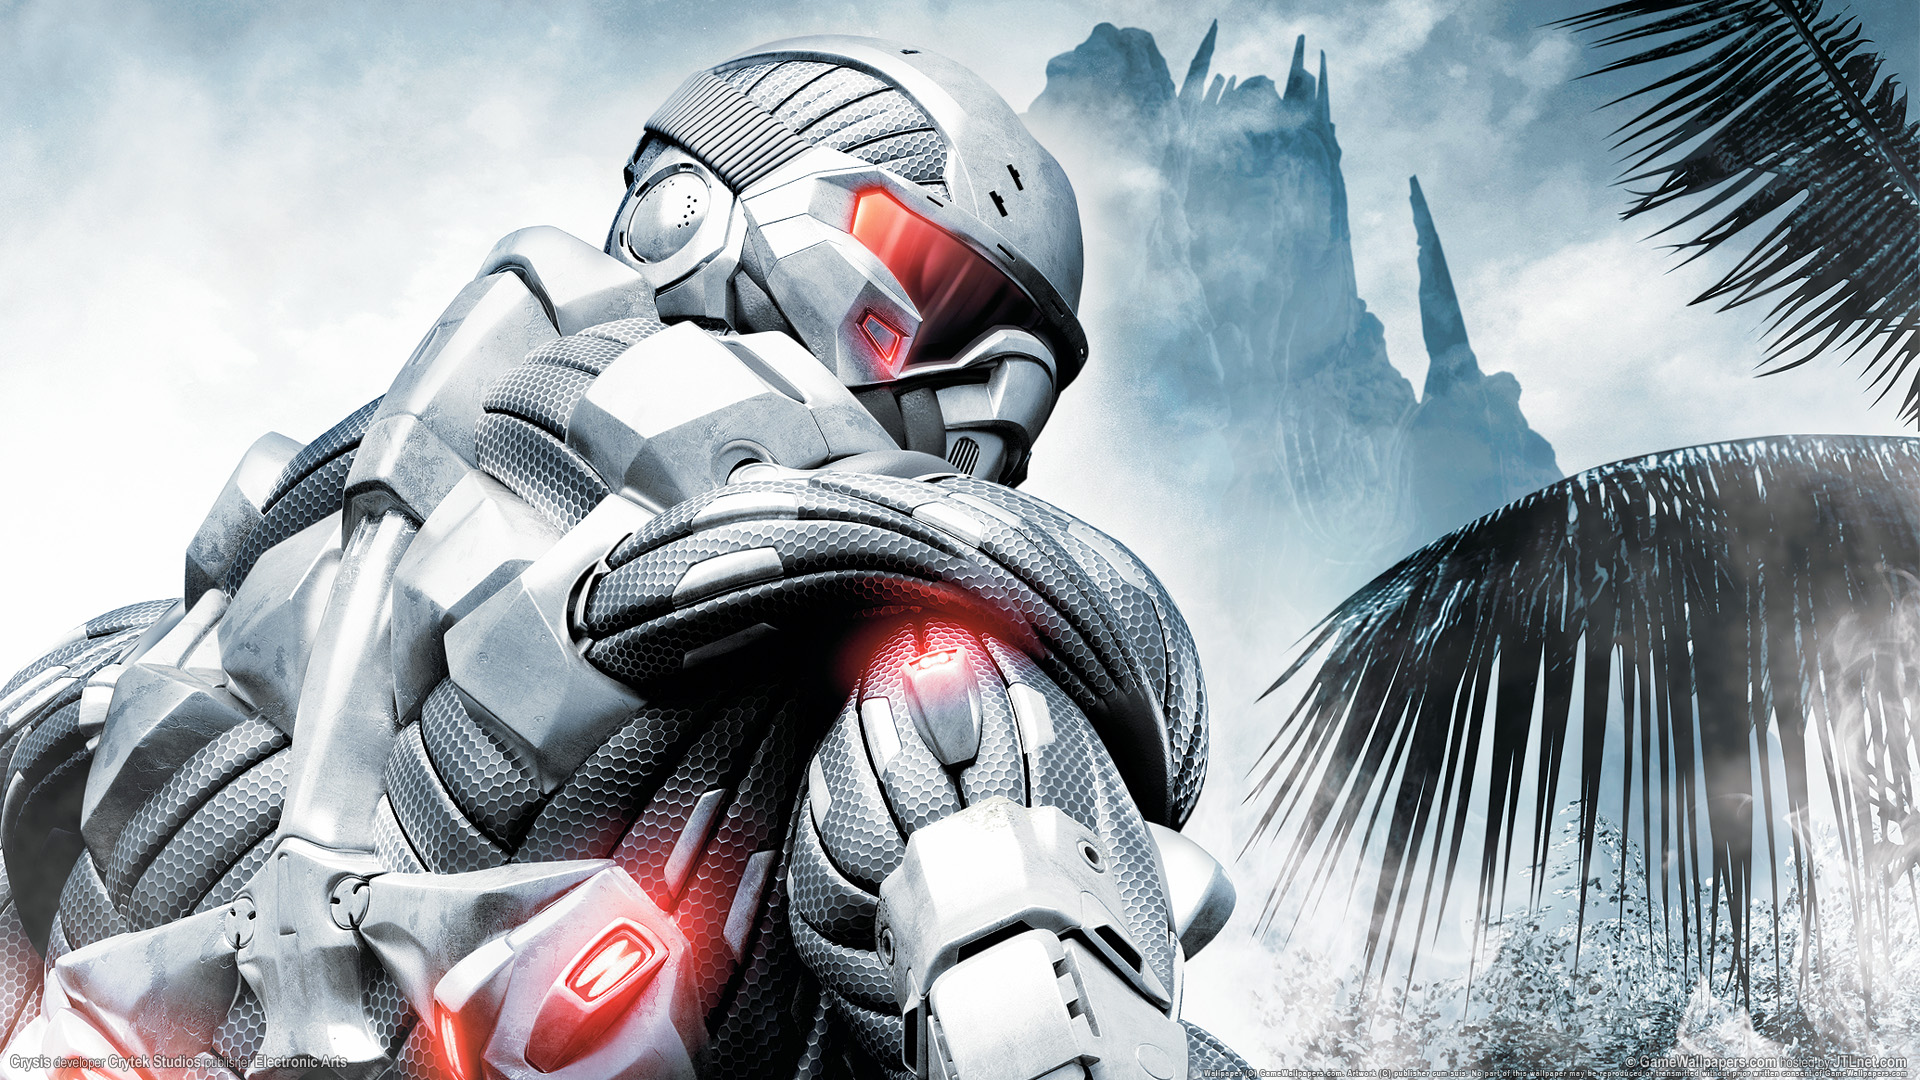 Crysis Game HD